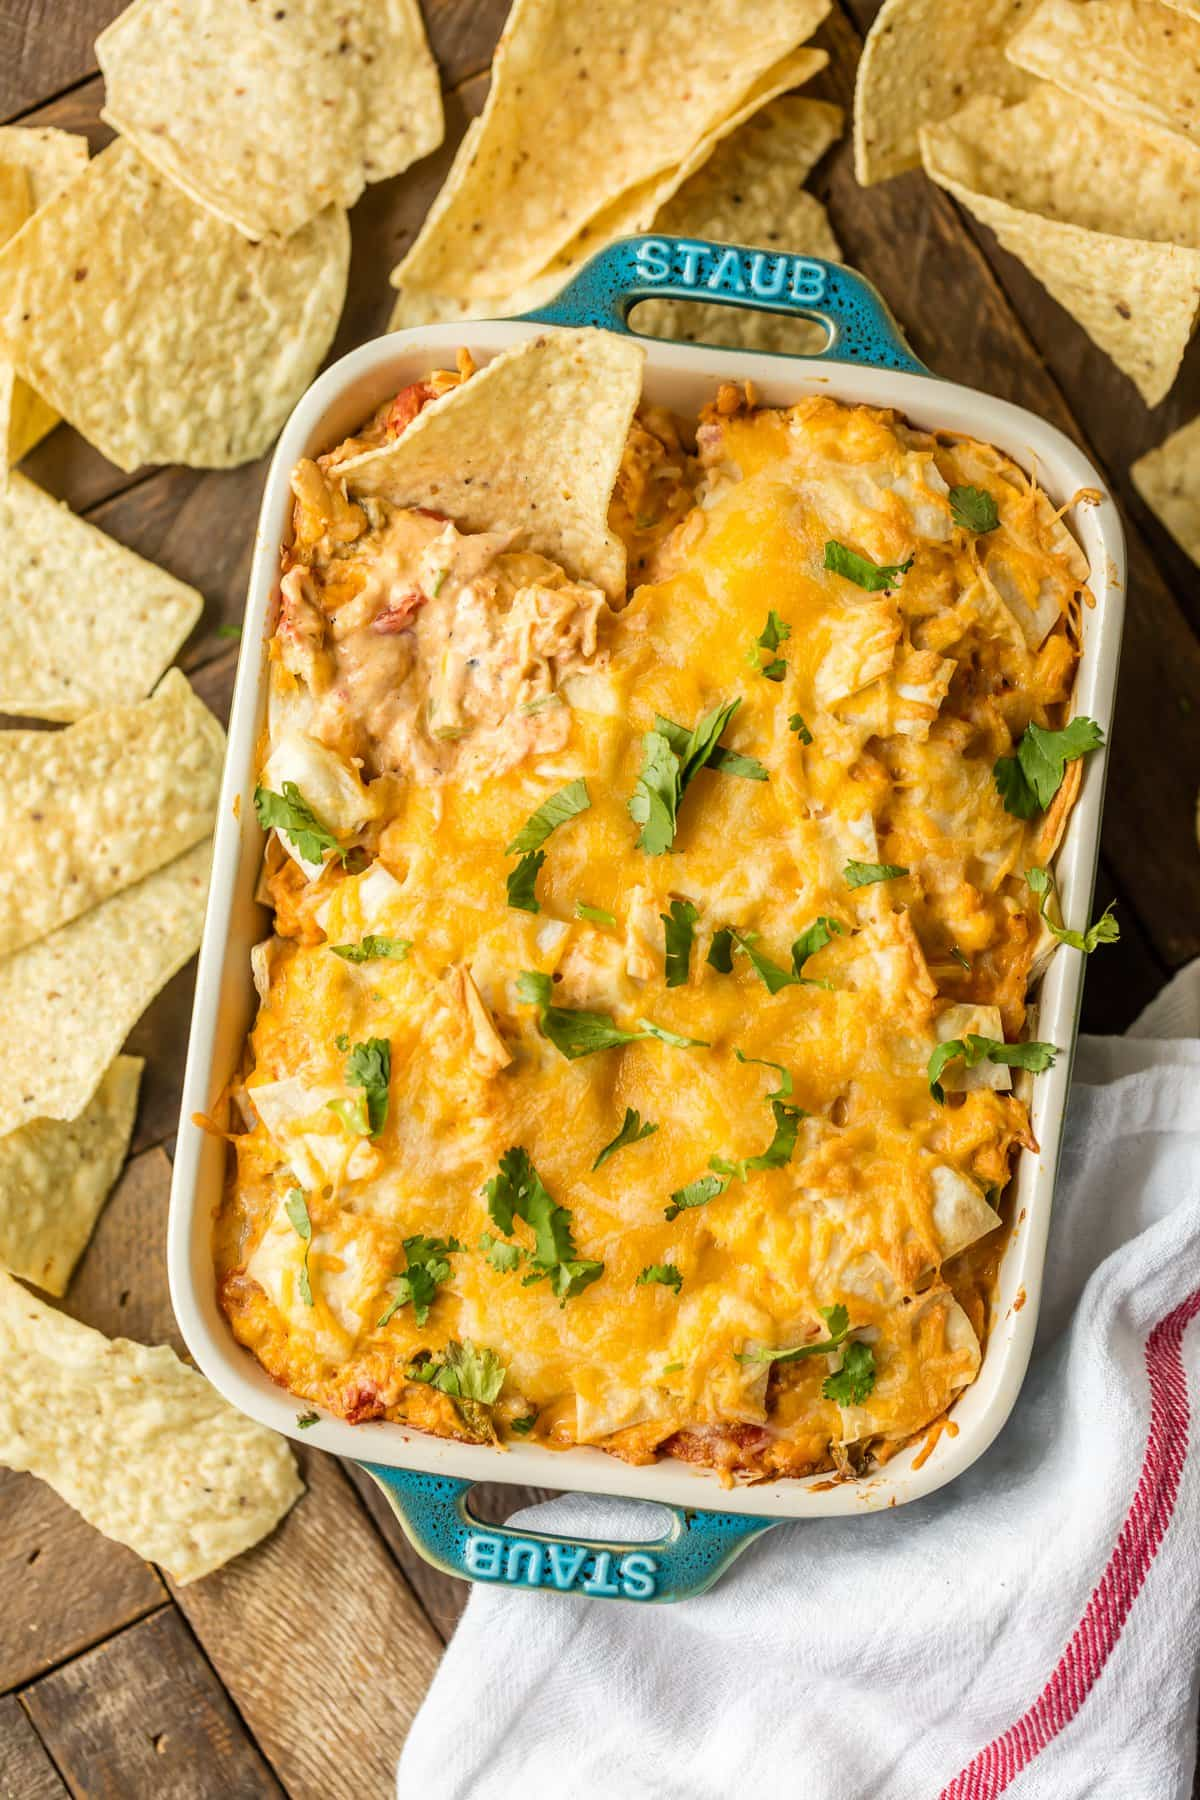 KING RANCH CHICKEN DIP is a fun twist on a classic family favorite casserole. The flavors including chicken, rotel, cheese, and tortillas lend themselves easily to a delicious dip, just perfect for the Super Bowl!